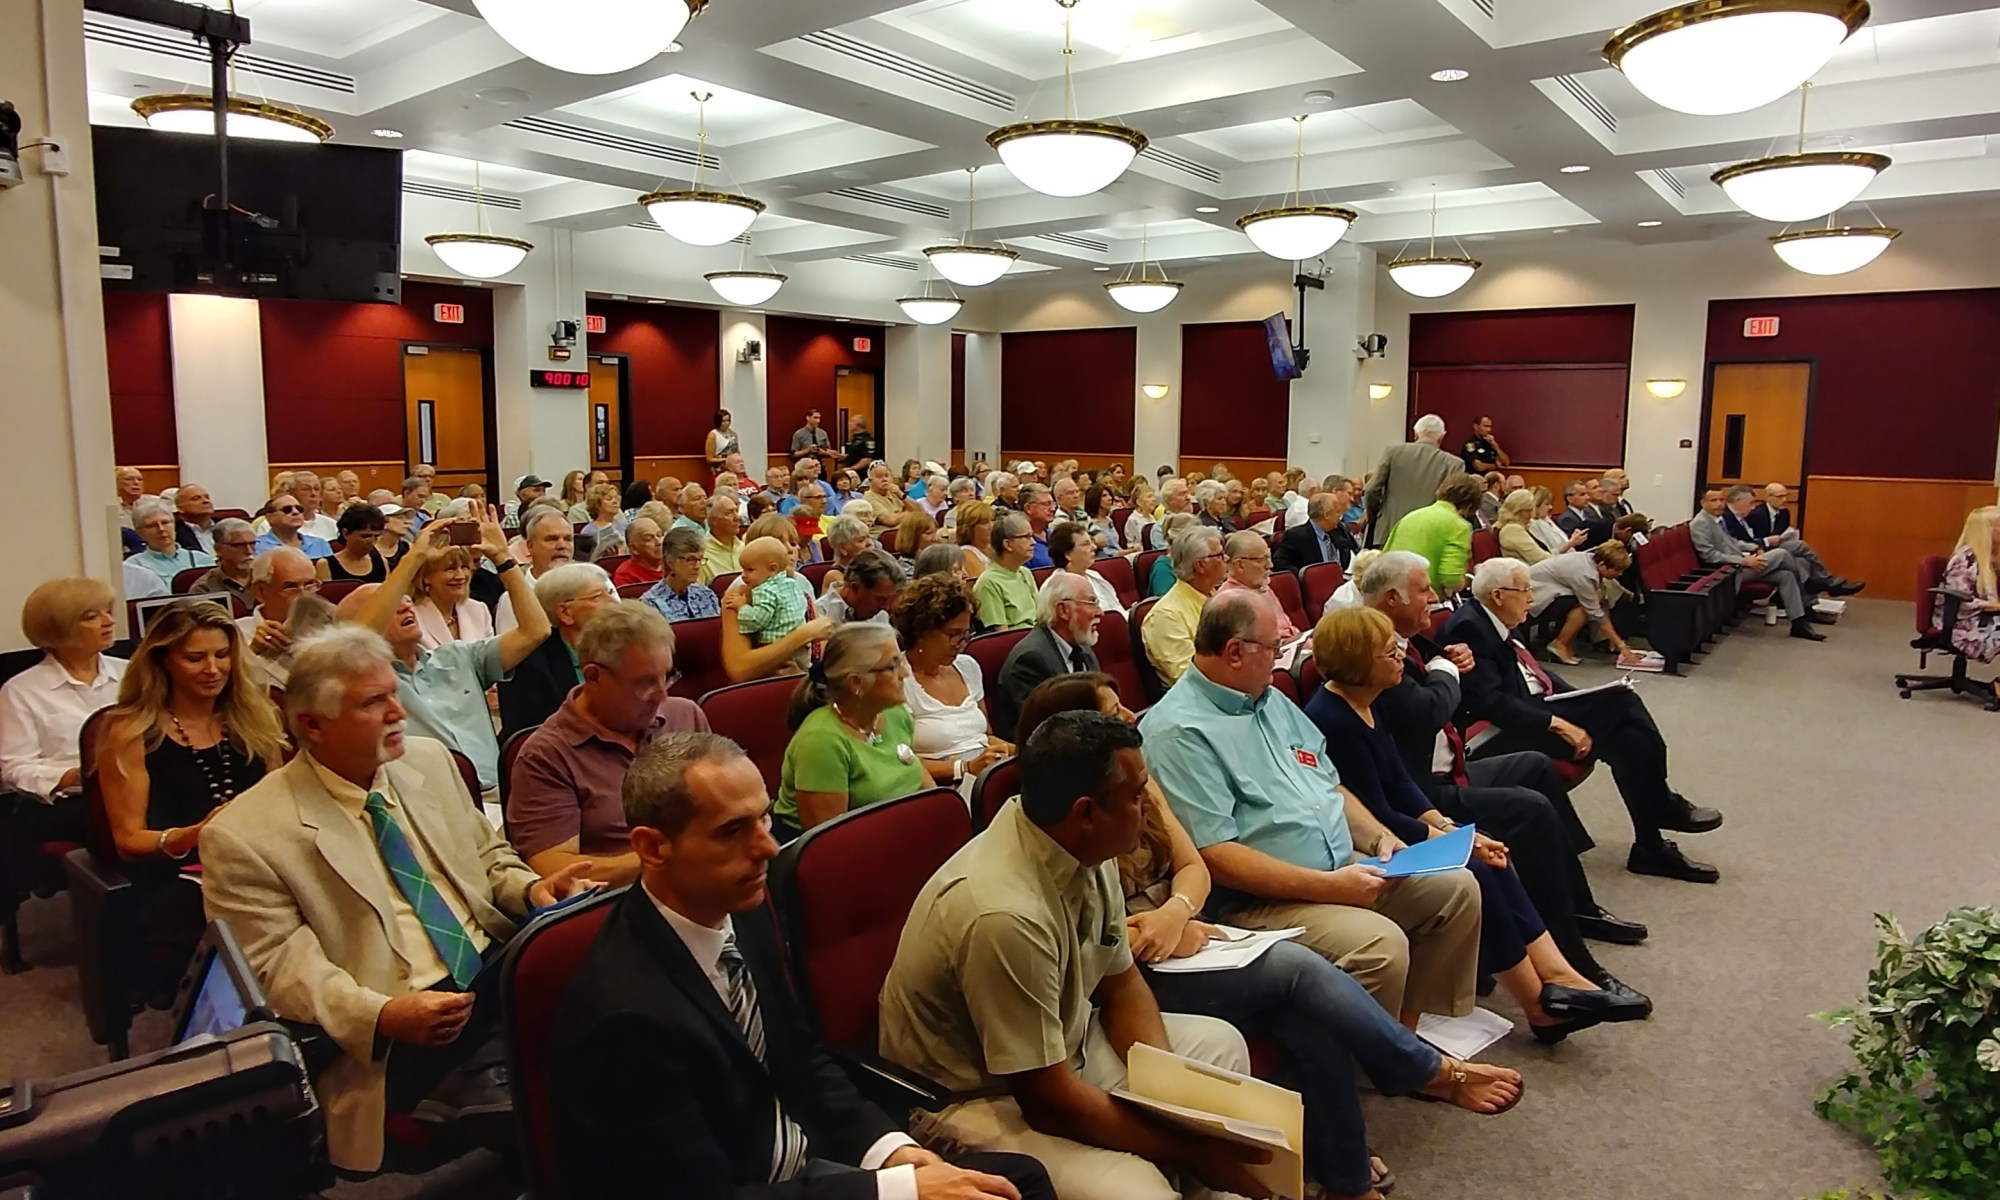 Photo of the people in attendance at the County Commission Hearing today